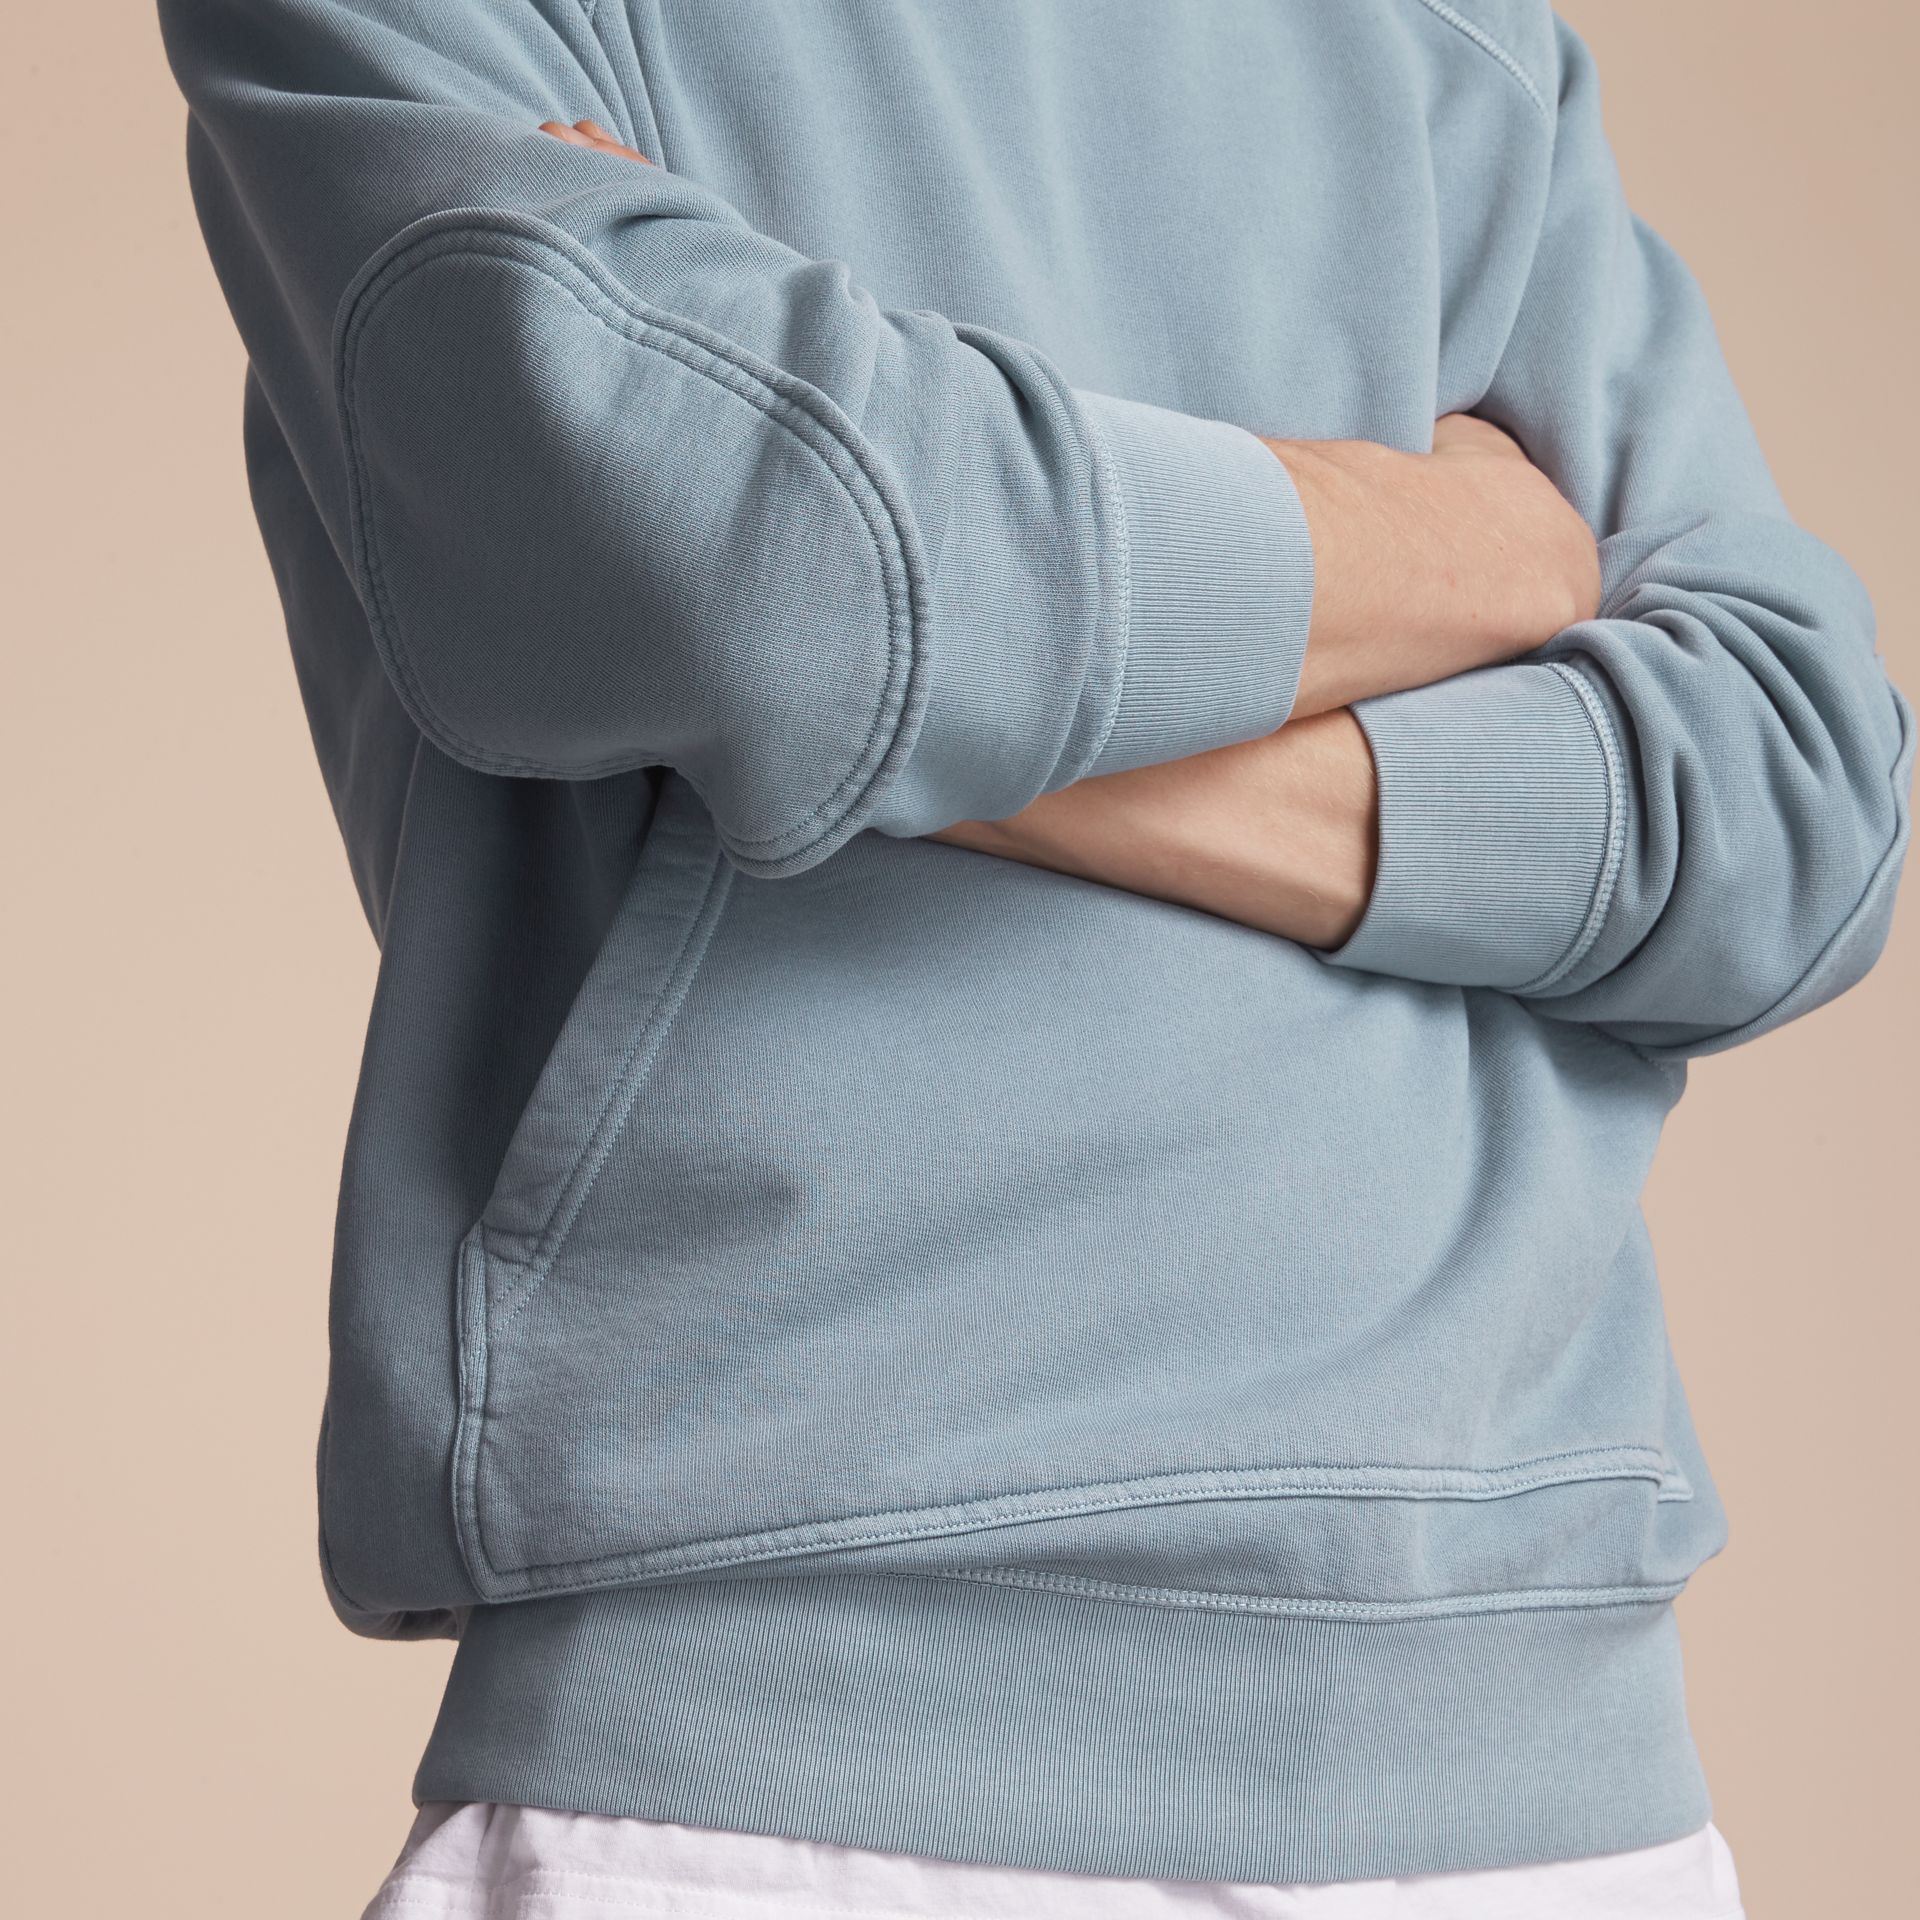 Unisex Pigment-dyed Cotton Oversize Sweatshirt in Dusty Blue - Men | Burberry - gallery image 5